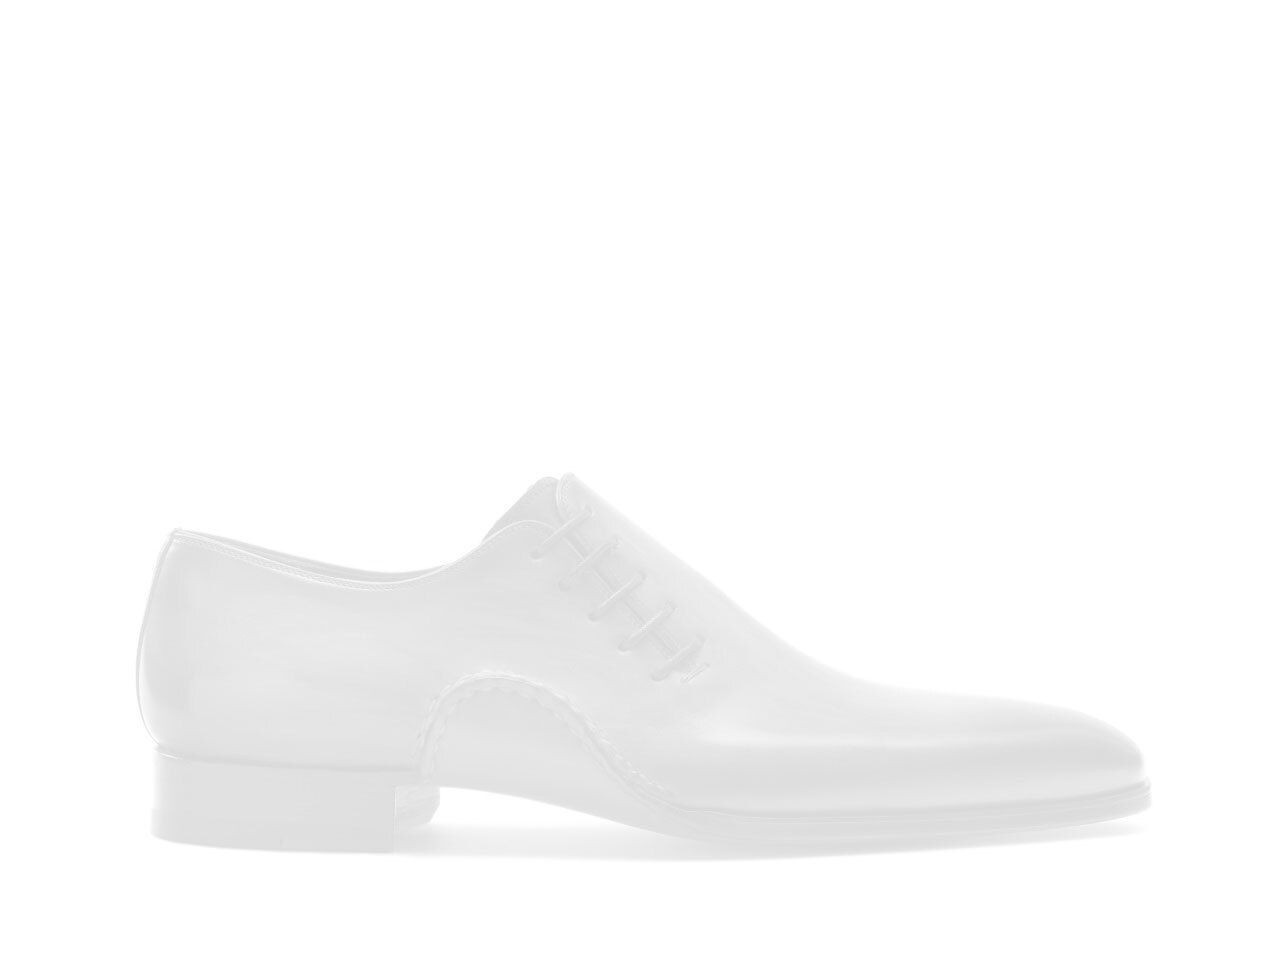 Side view of the Magnanni Volar White Men's Sneakers